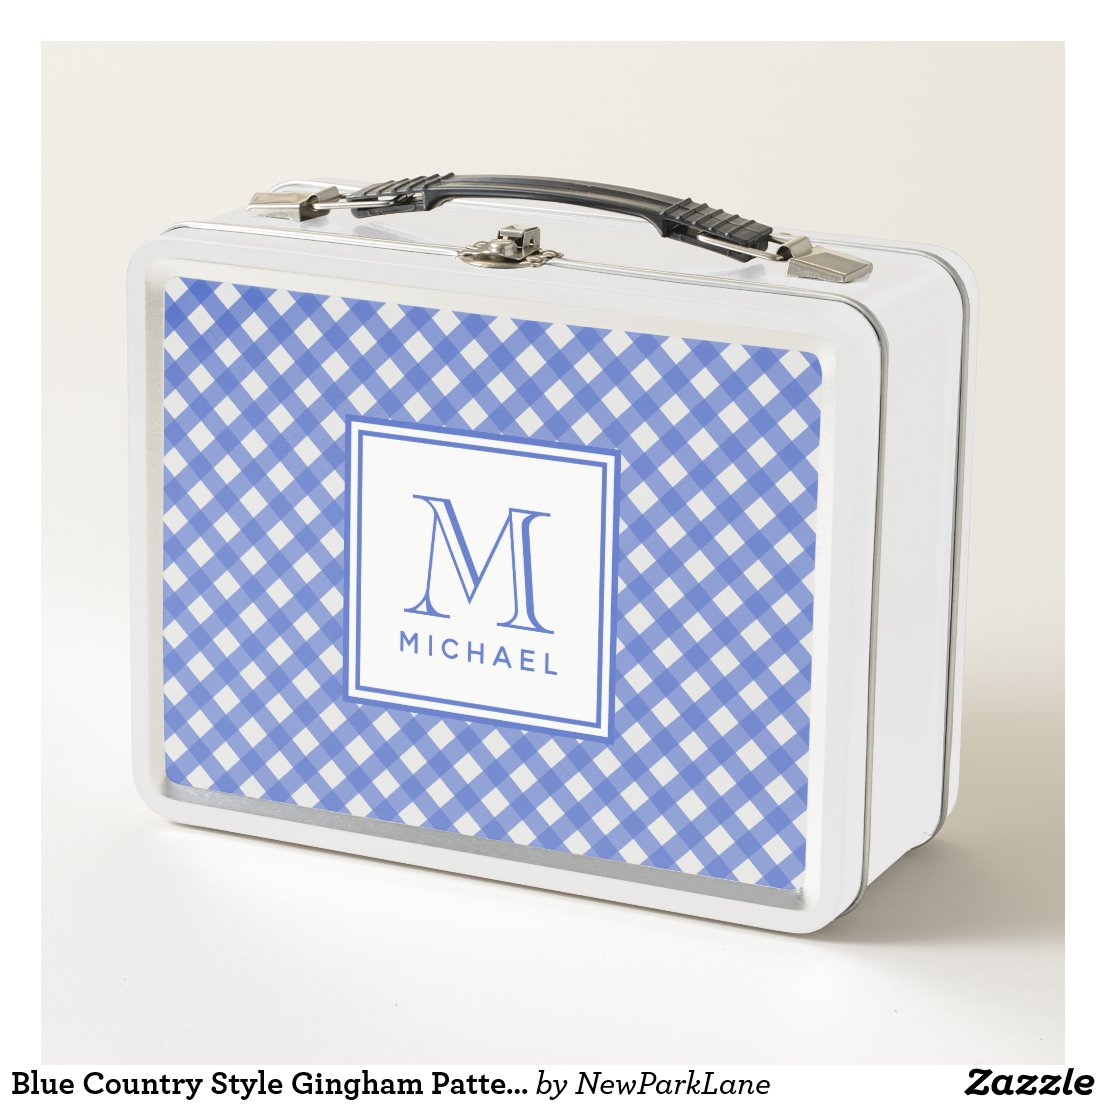 Blue Country Style Gingham Pattern Monogrammed Metal Lunch Box